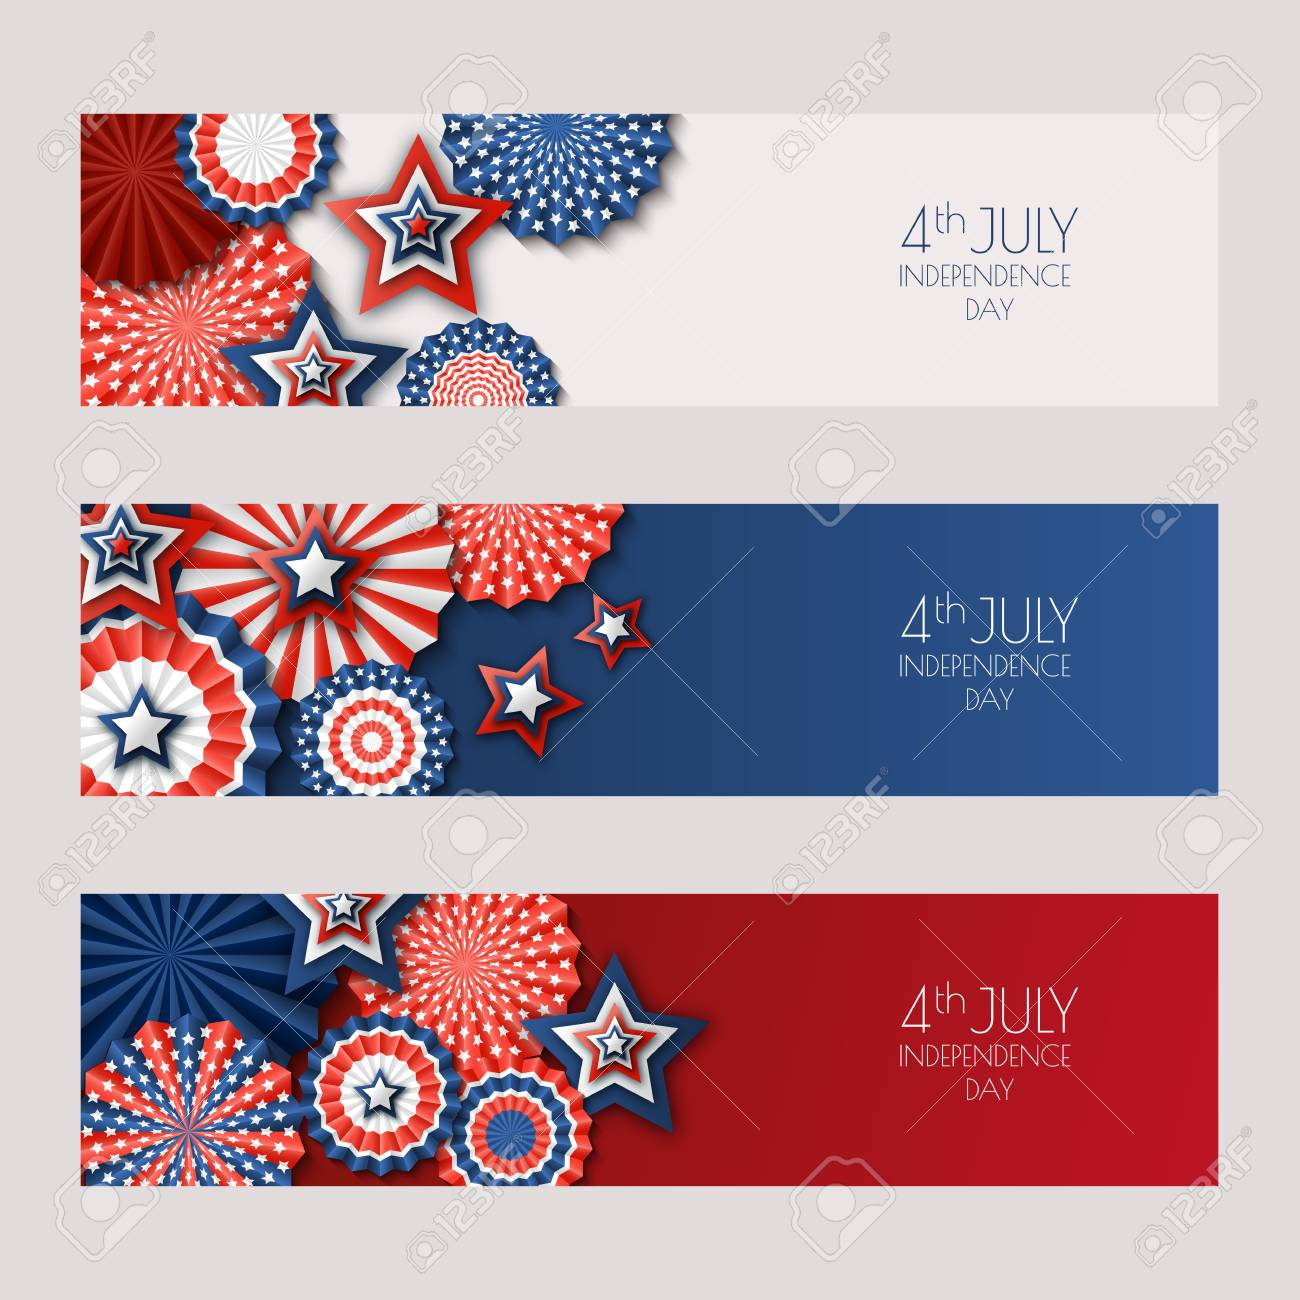 4th of July, USA Independence Day vector banners with paper stars in USA flag colors. Holiday backgrounds set with place for text. Material design for greeting card, banner layout, flyer, poster. - 80336304